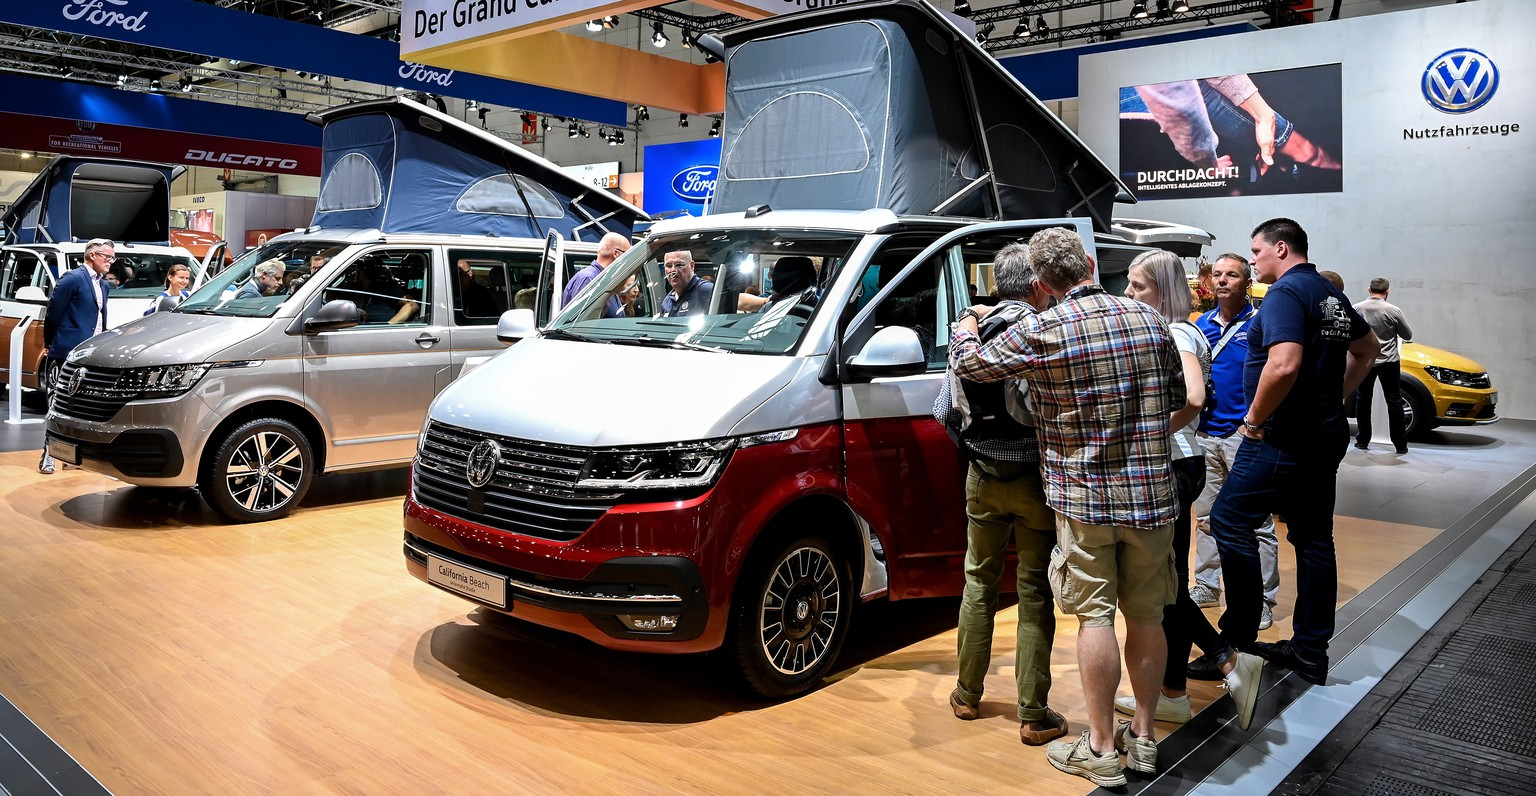 epa07819059 New Volkswagen (VW) ?California Beach? camper models on display at the camping trade fair 'Caravan Salon' in Duesseldorf, Germany, 05 September 2019. The 'Caravan Salon' trade show from 30 August to 08 September 2019 gathers the international caravaning sector for its annual highlight presentation of their latest developments and products.  EPA/SASCHA STEINBACH